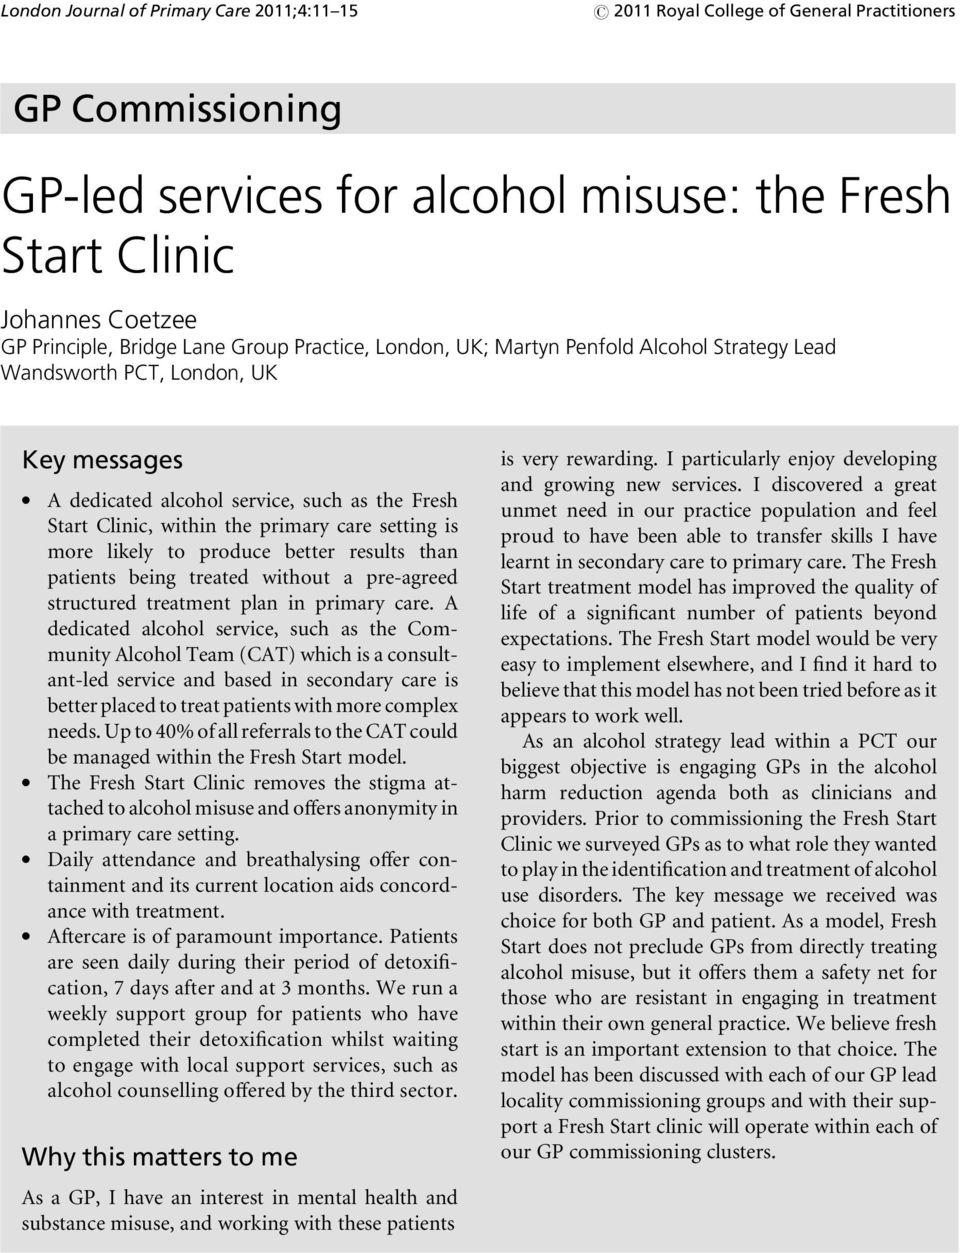 A dedicated alcohol service, such as the Fresh Start Clinic, within the primary care setting is more likely to produce better results than patients being treated without a pre-agreed structured